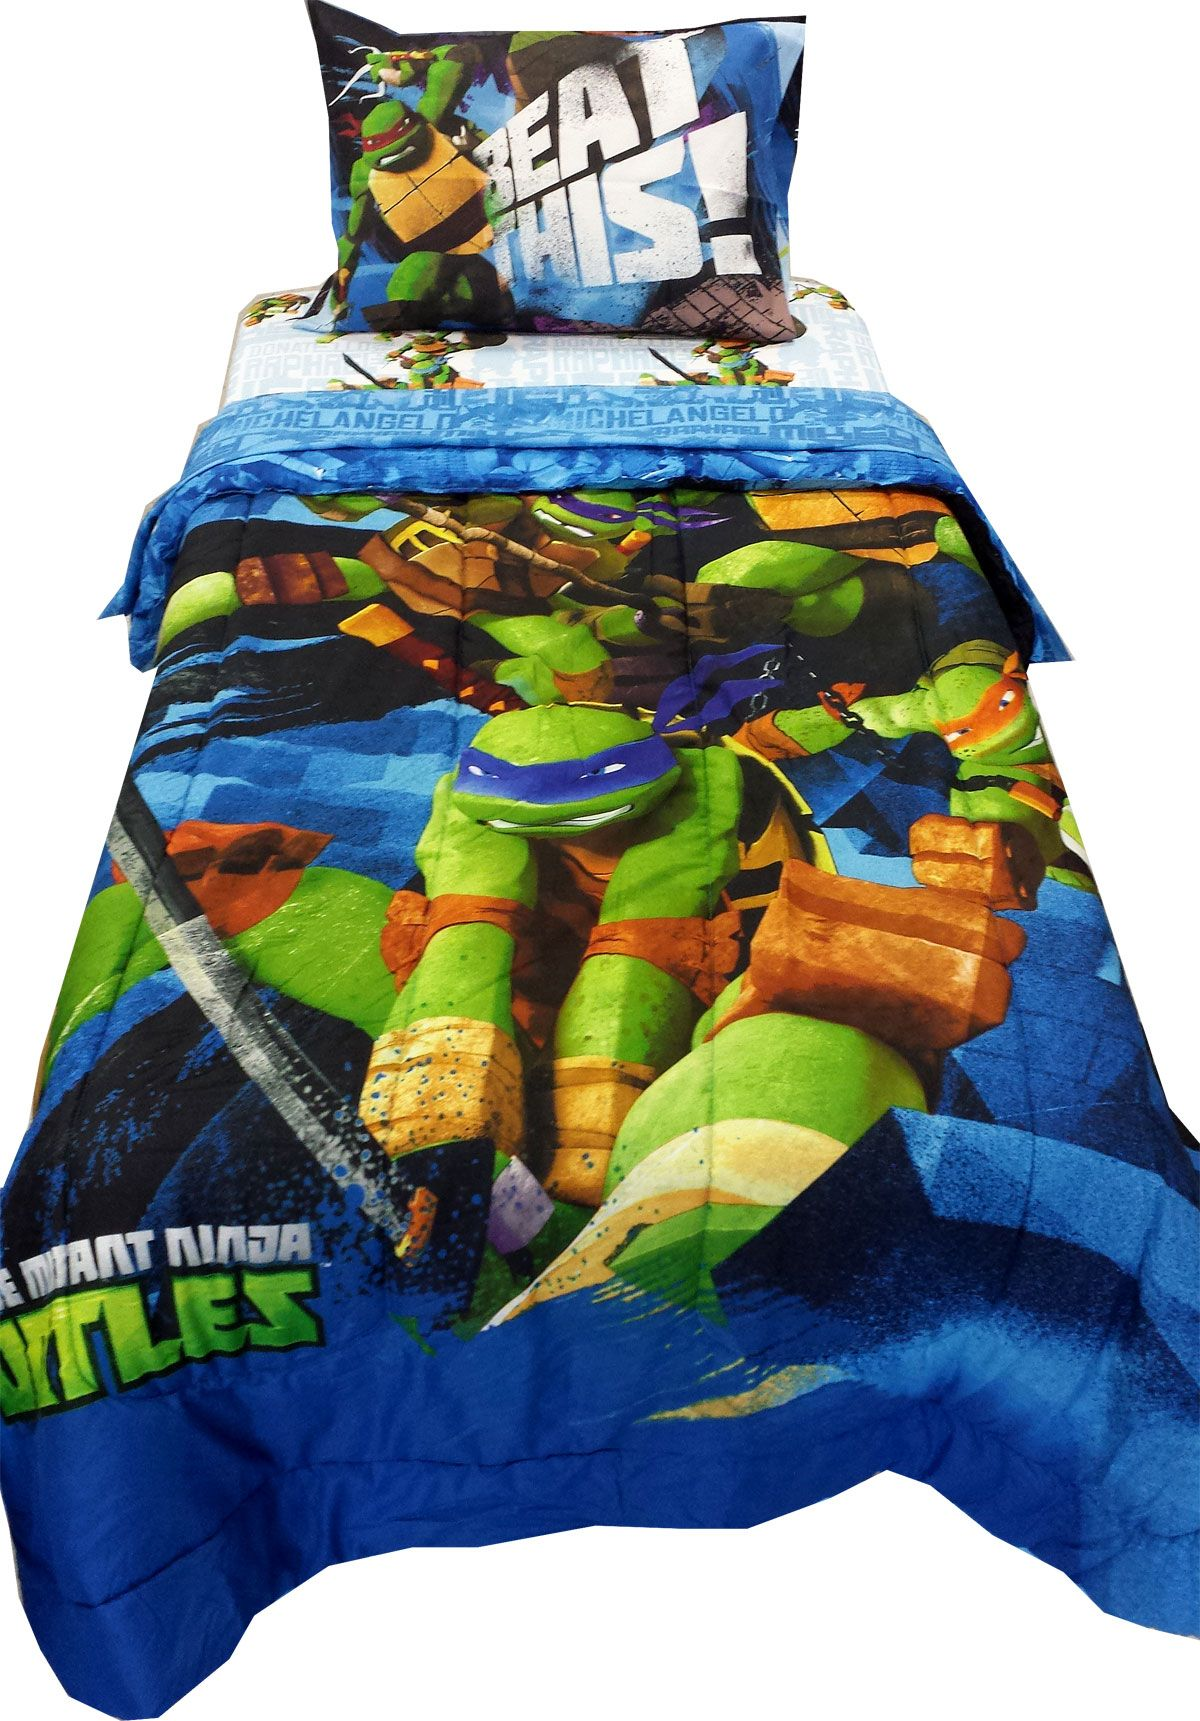 Nice Best Teenage Mutant Ninja Turtles Bedding Set 75 With Additional Home Design Idea Teenage Mutant Ninja Turtles Bedroom Ninja Turtle Bedroom Turtle Bedroom